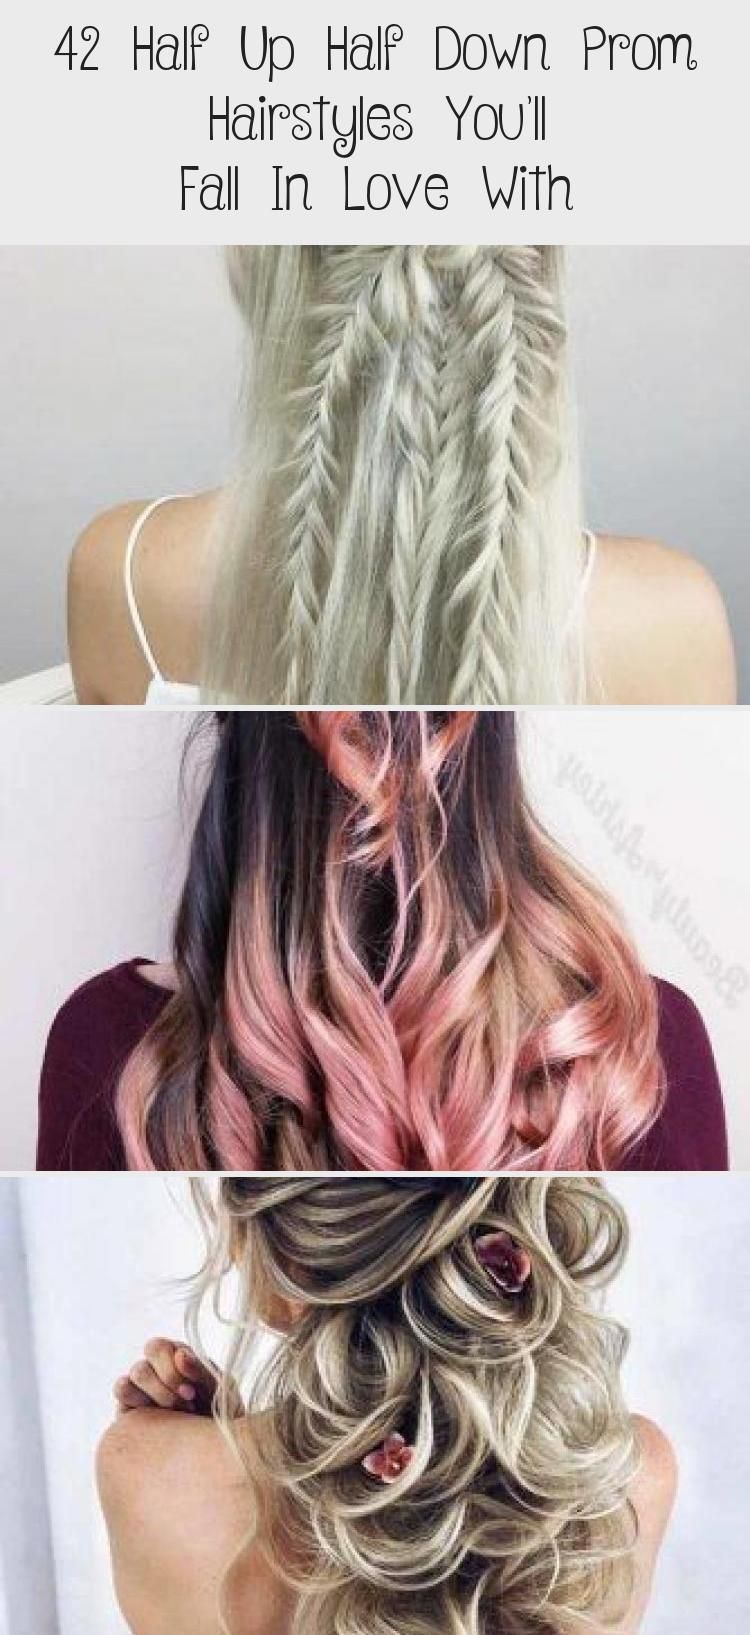 42 Half Up Half Down Prom Hairstyles You Ll Fall In Love With Bridemaidshair Bumped Half Up Hairstyles Halfup Half Half Up Hair Prom Hair Down Hair Styles